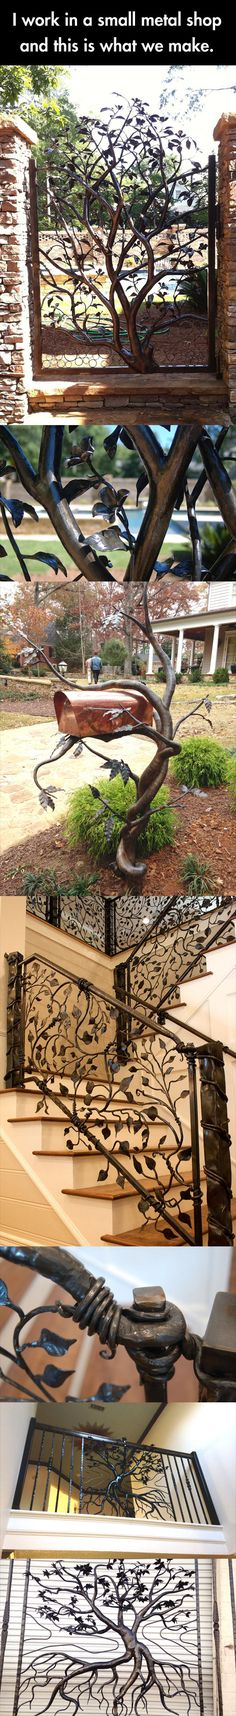 Some incredible metal work…I would like to replace some handrails in my house with this.